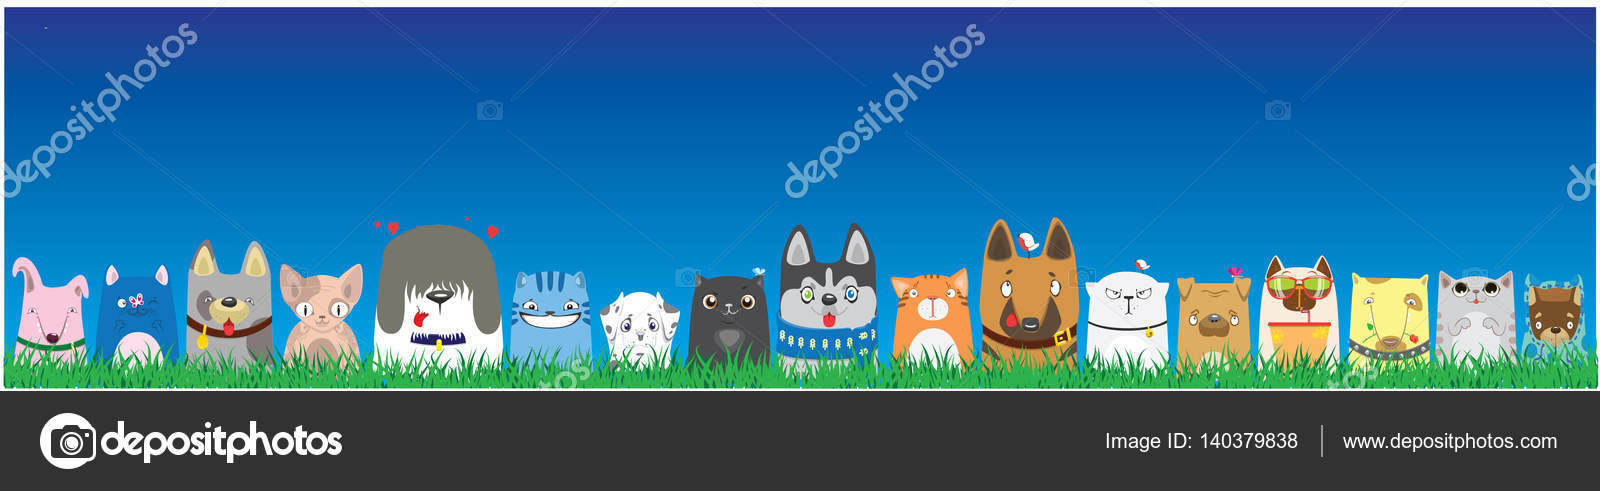 Cartoon Dogs And Cats On Blue Sky Background Cute Pets Background Banner Stock Vector C Vasilixa 140379838